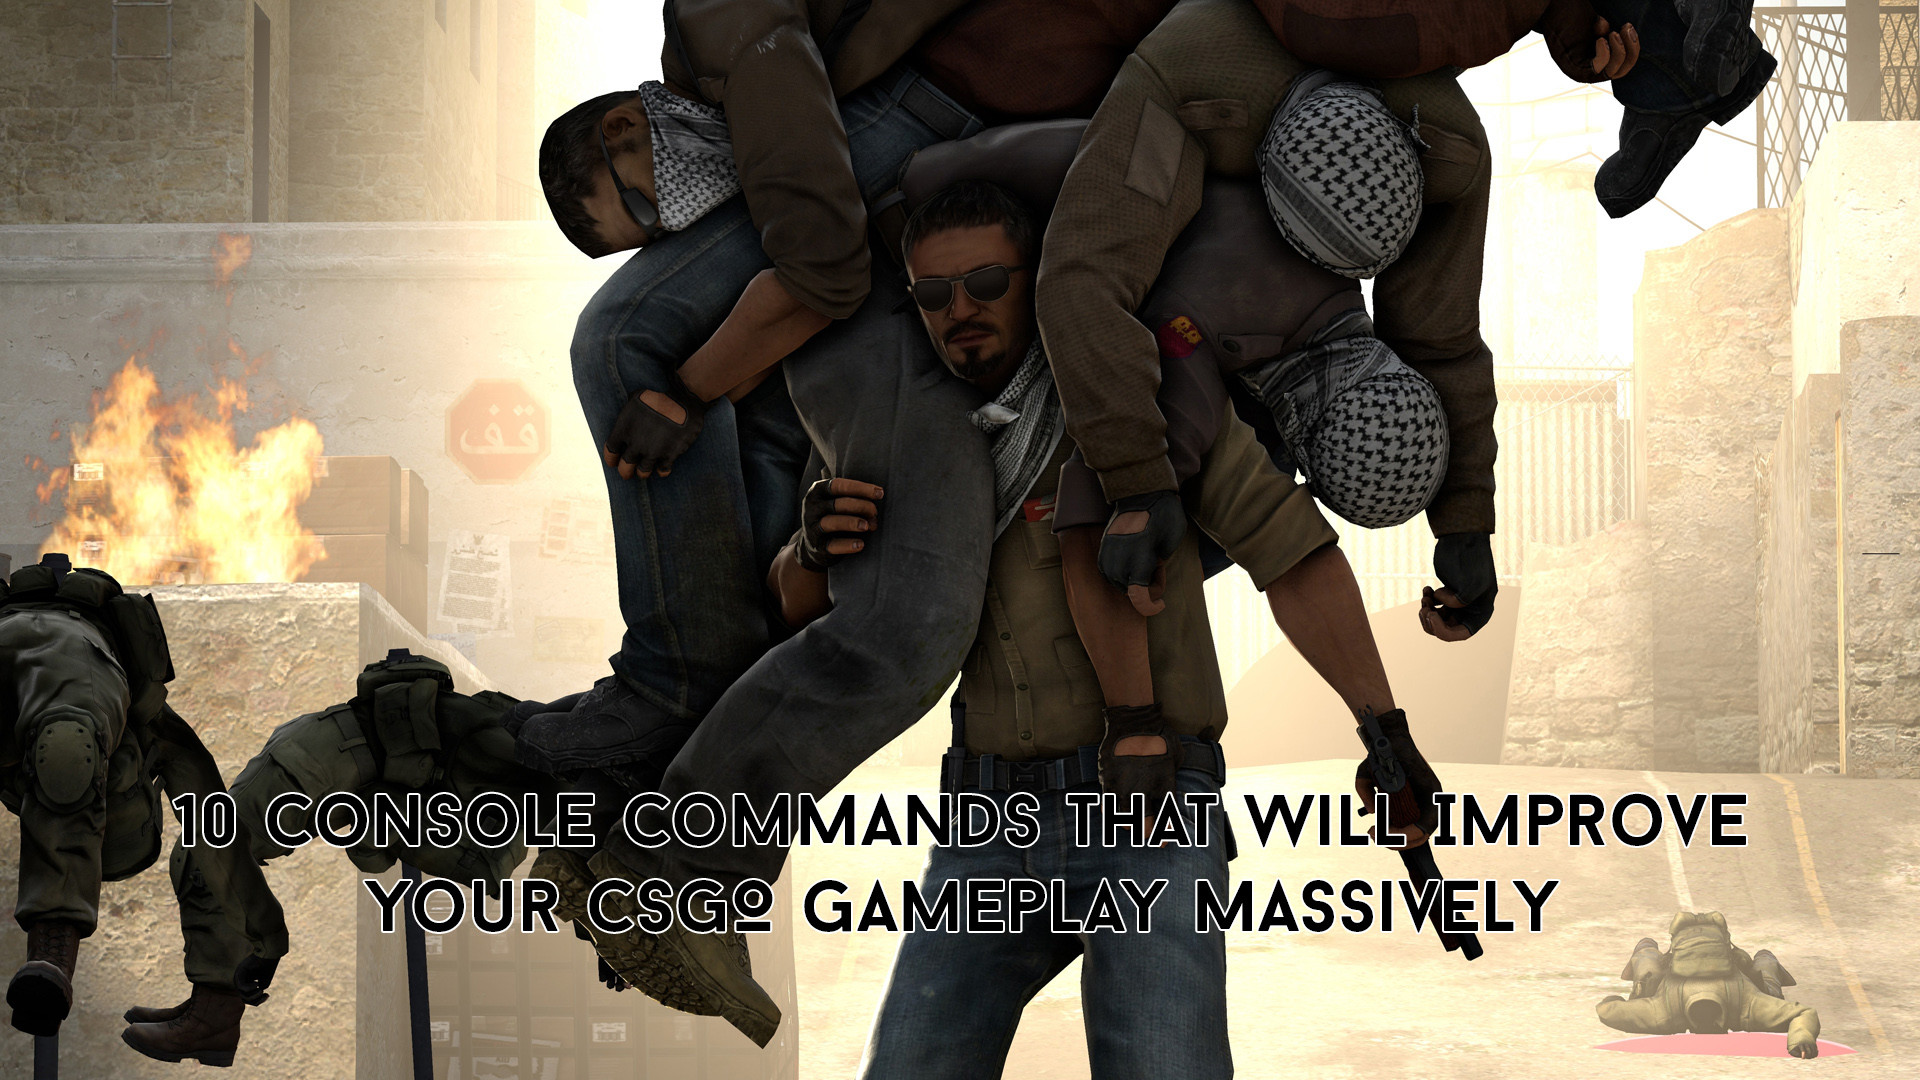 10 Console Commands that will Improve Your CSGO Gameplay Massively – BC-GB